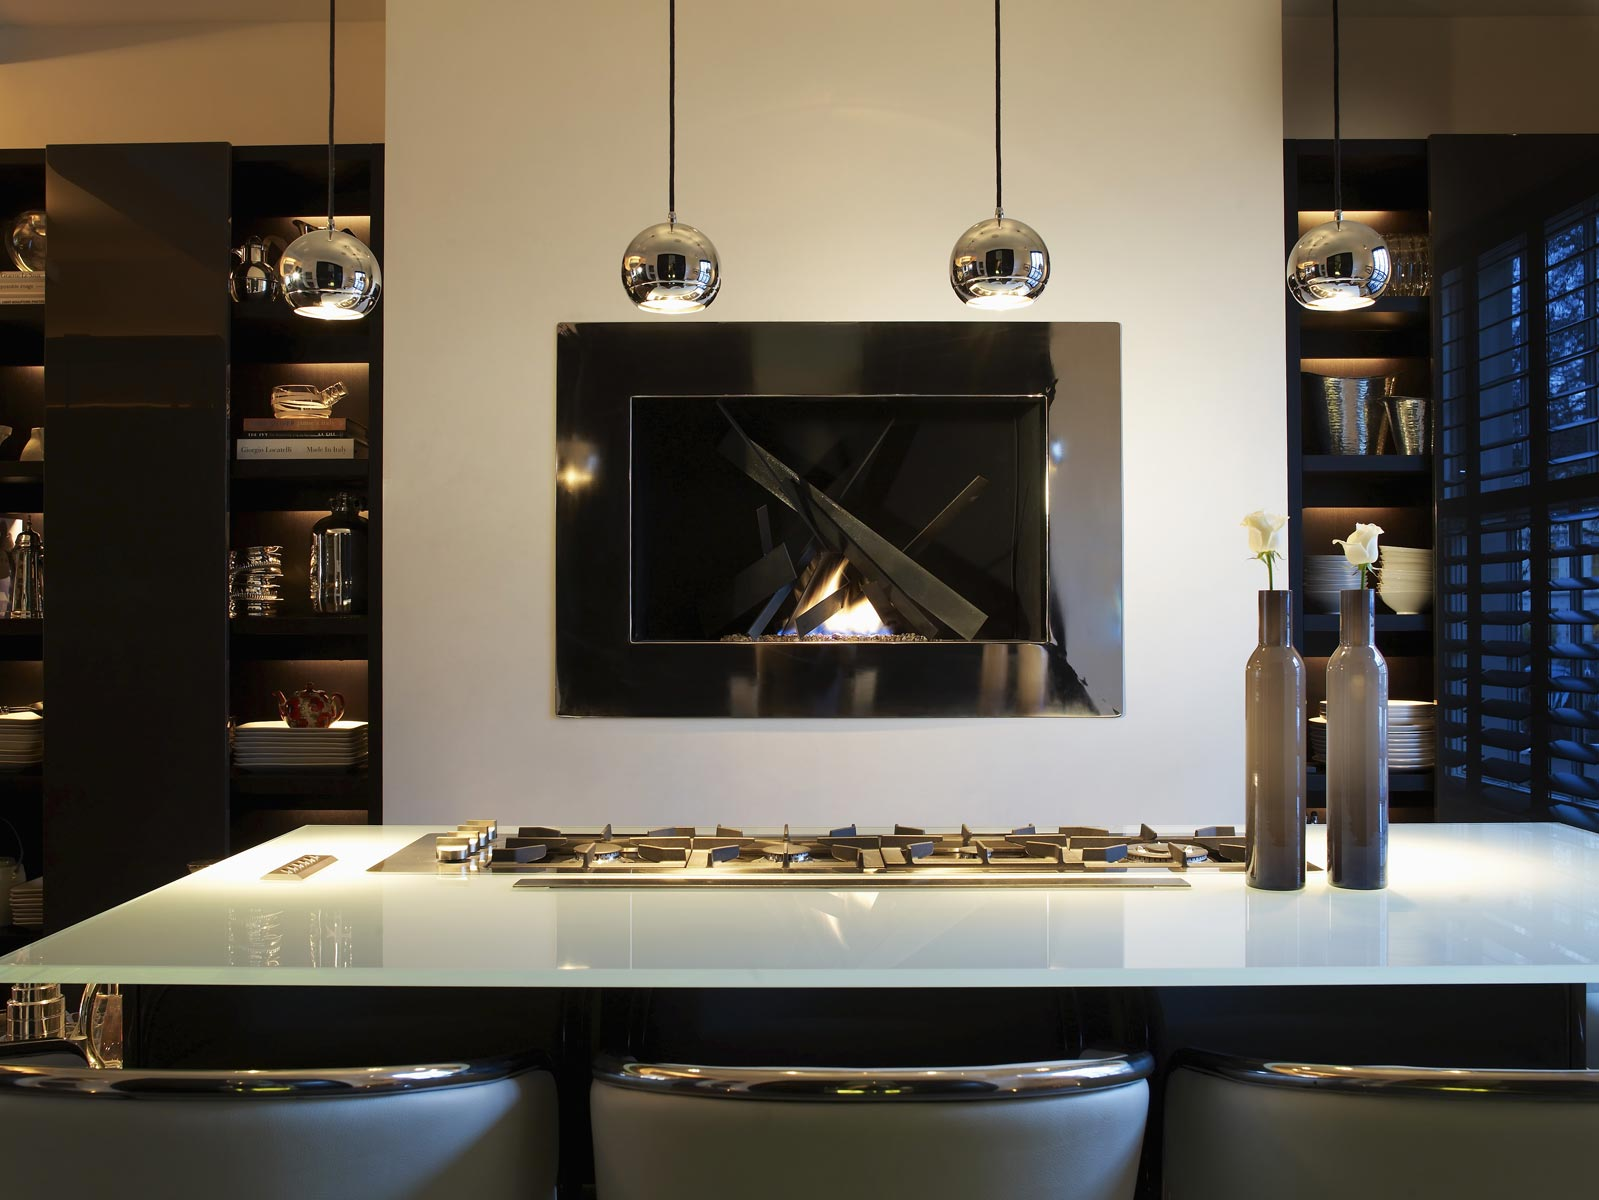 Superbe Modern Kitchen Design At The Town House London Kelly Hoppen Top 10 Kelly  Hoppen Design Ideas